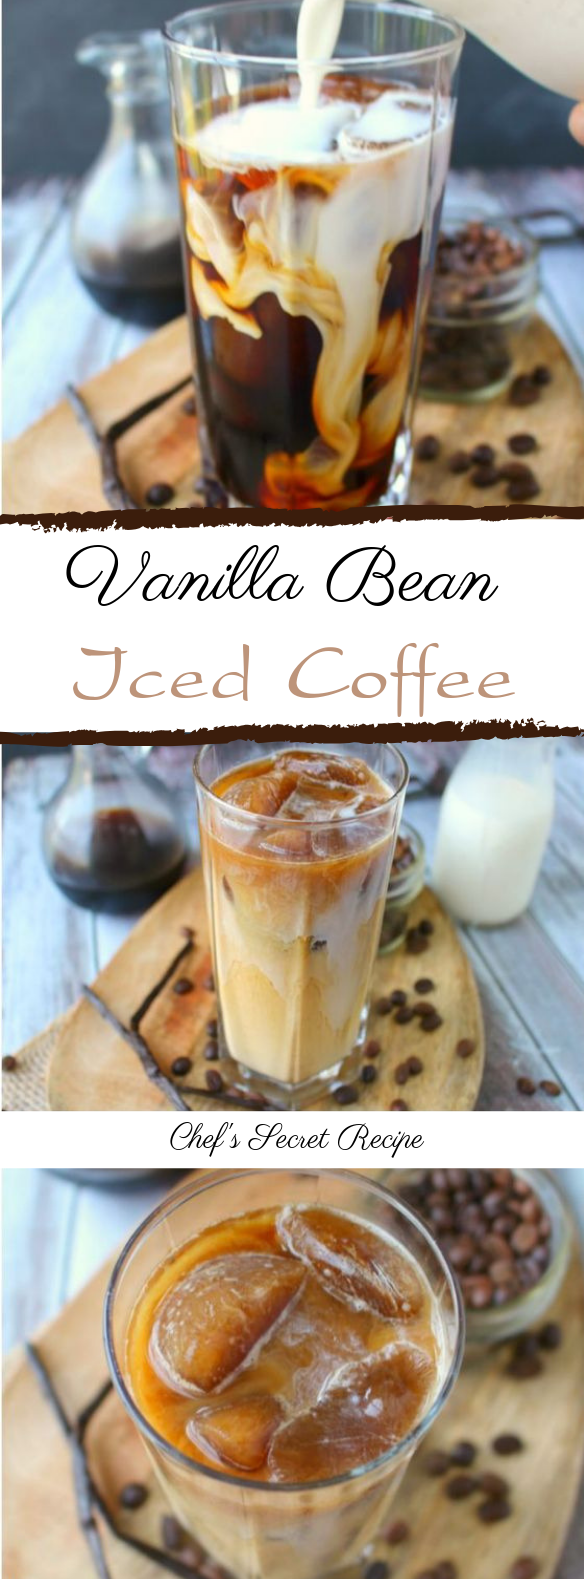 Vanilla Bean Iced Coffee #coffee #drink